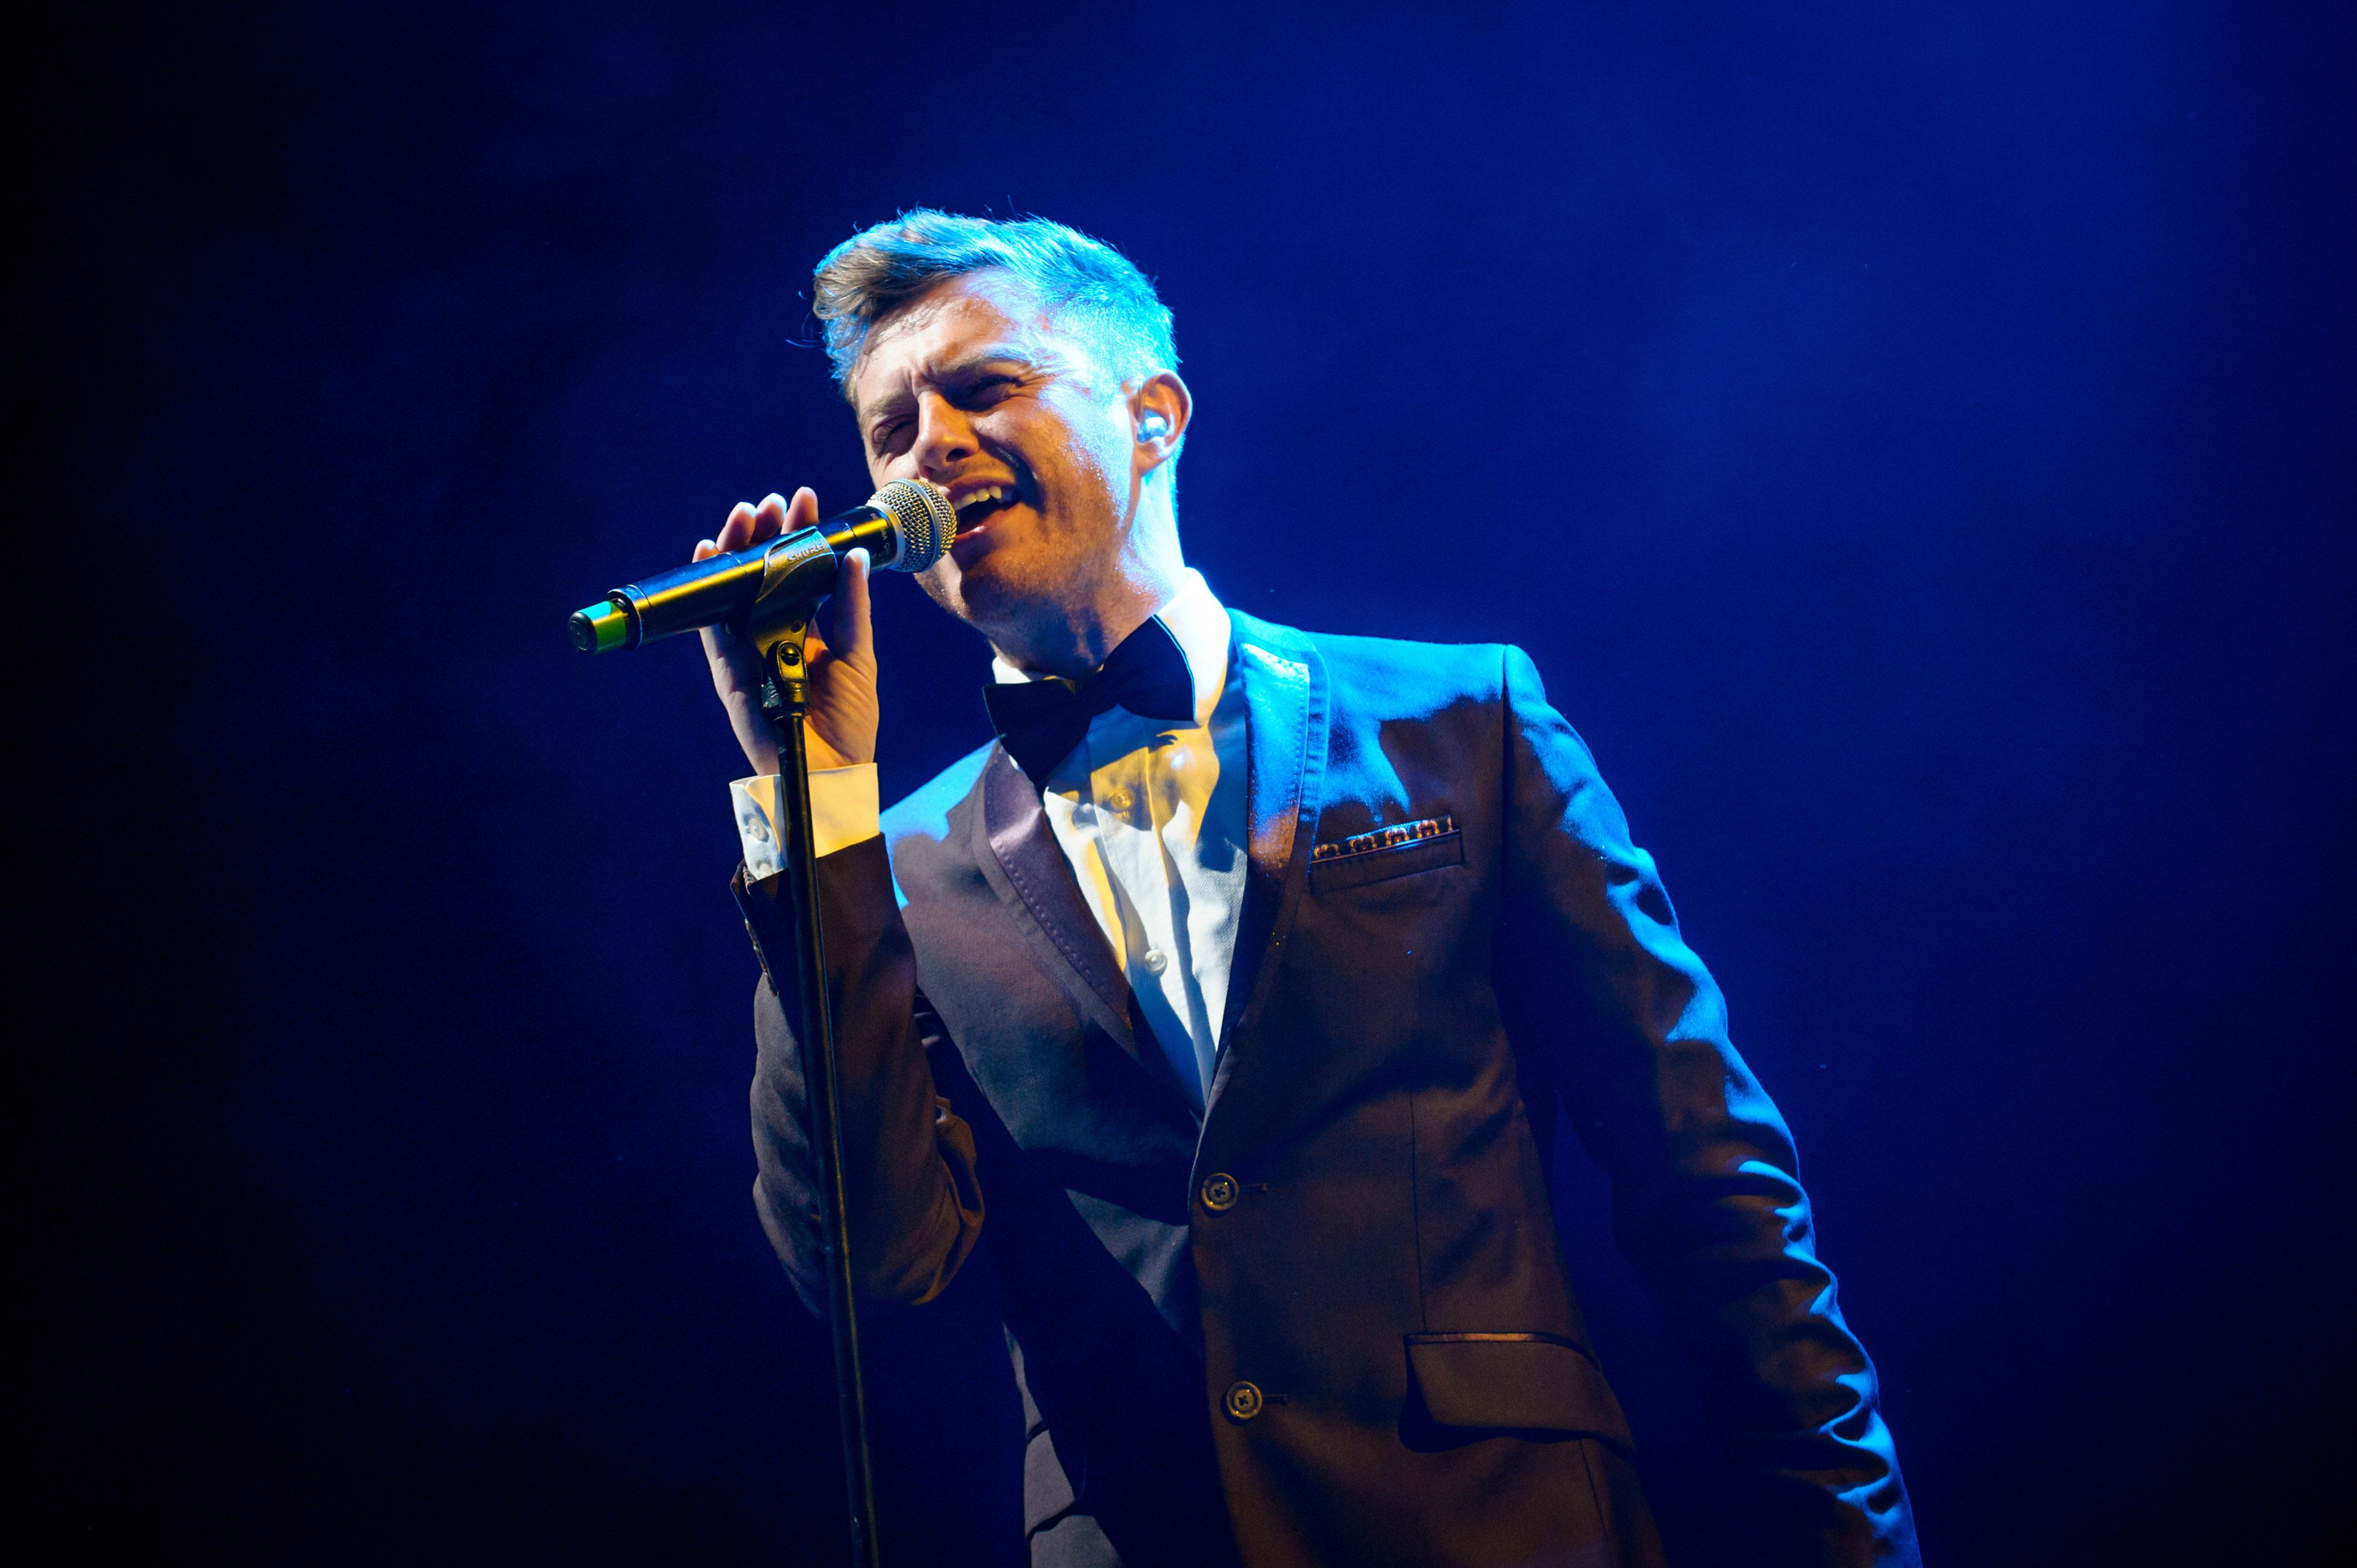 The Overtones' Timmy Matley Died From Balcony Fall While High On Crystal Meth, Coroner